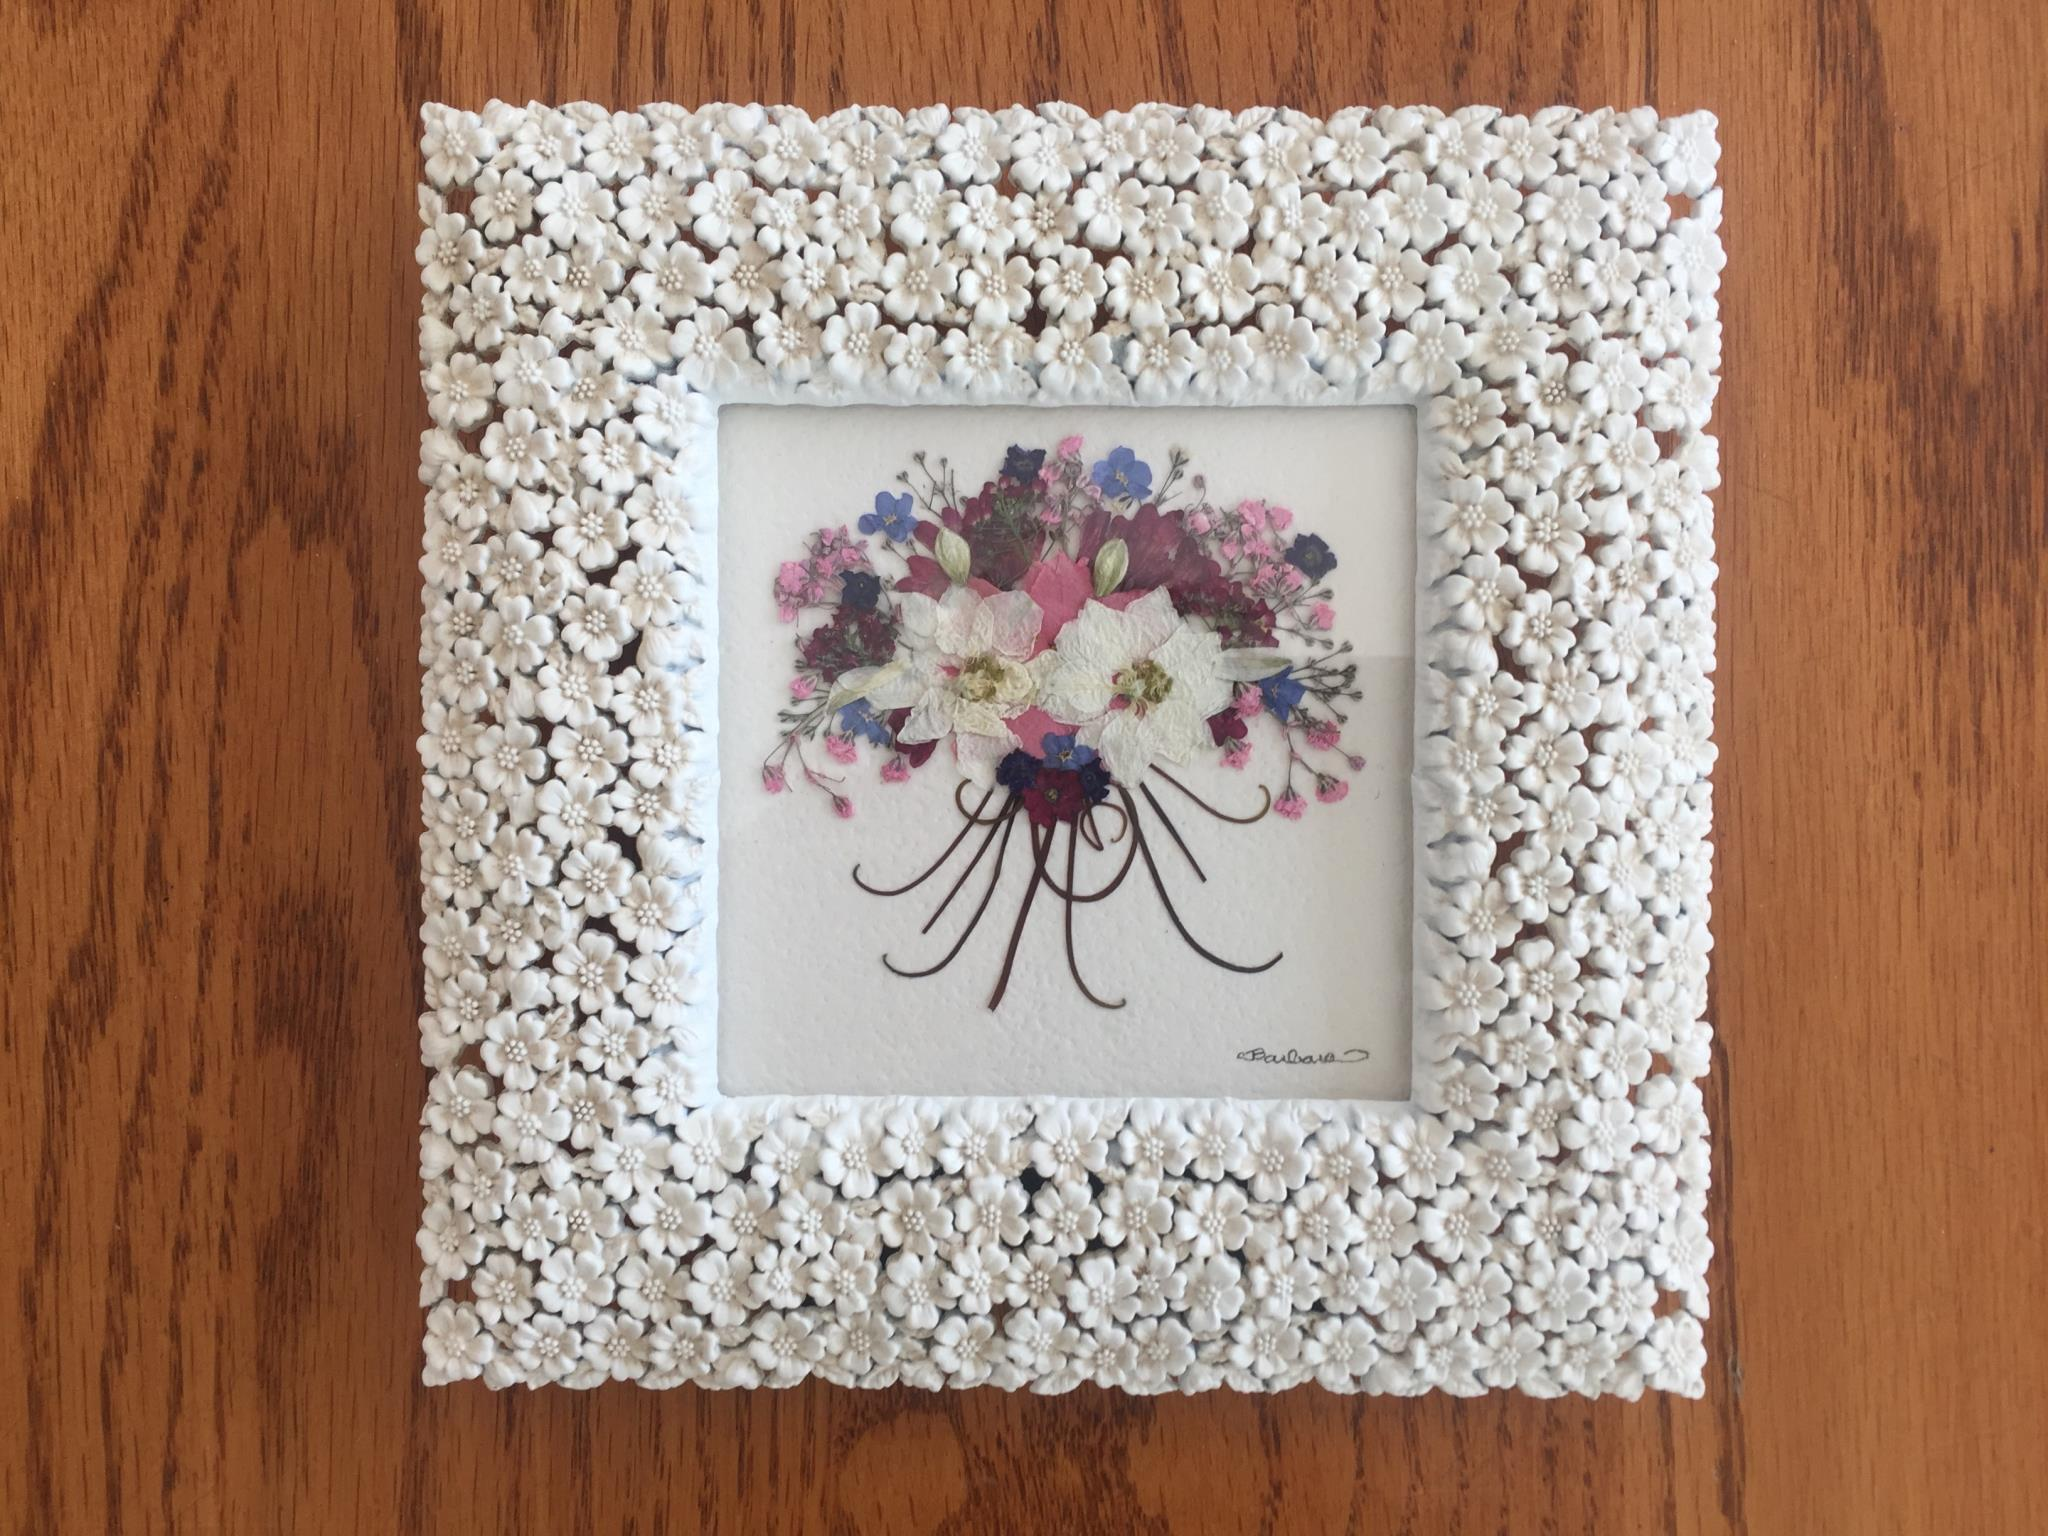 Musolf/Saalfeld, framed pressed flower, fern, leaf bouquet picture.